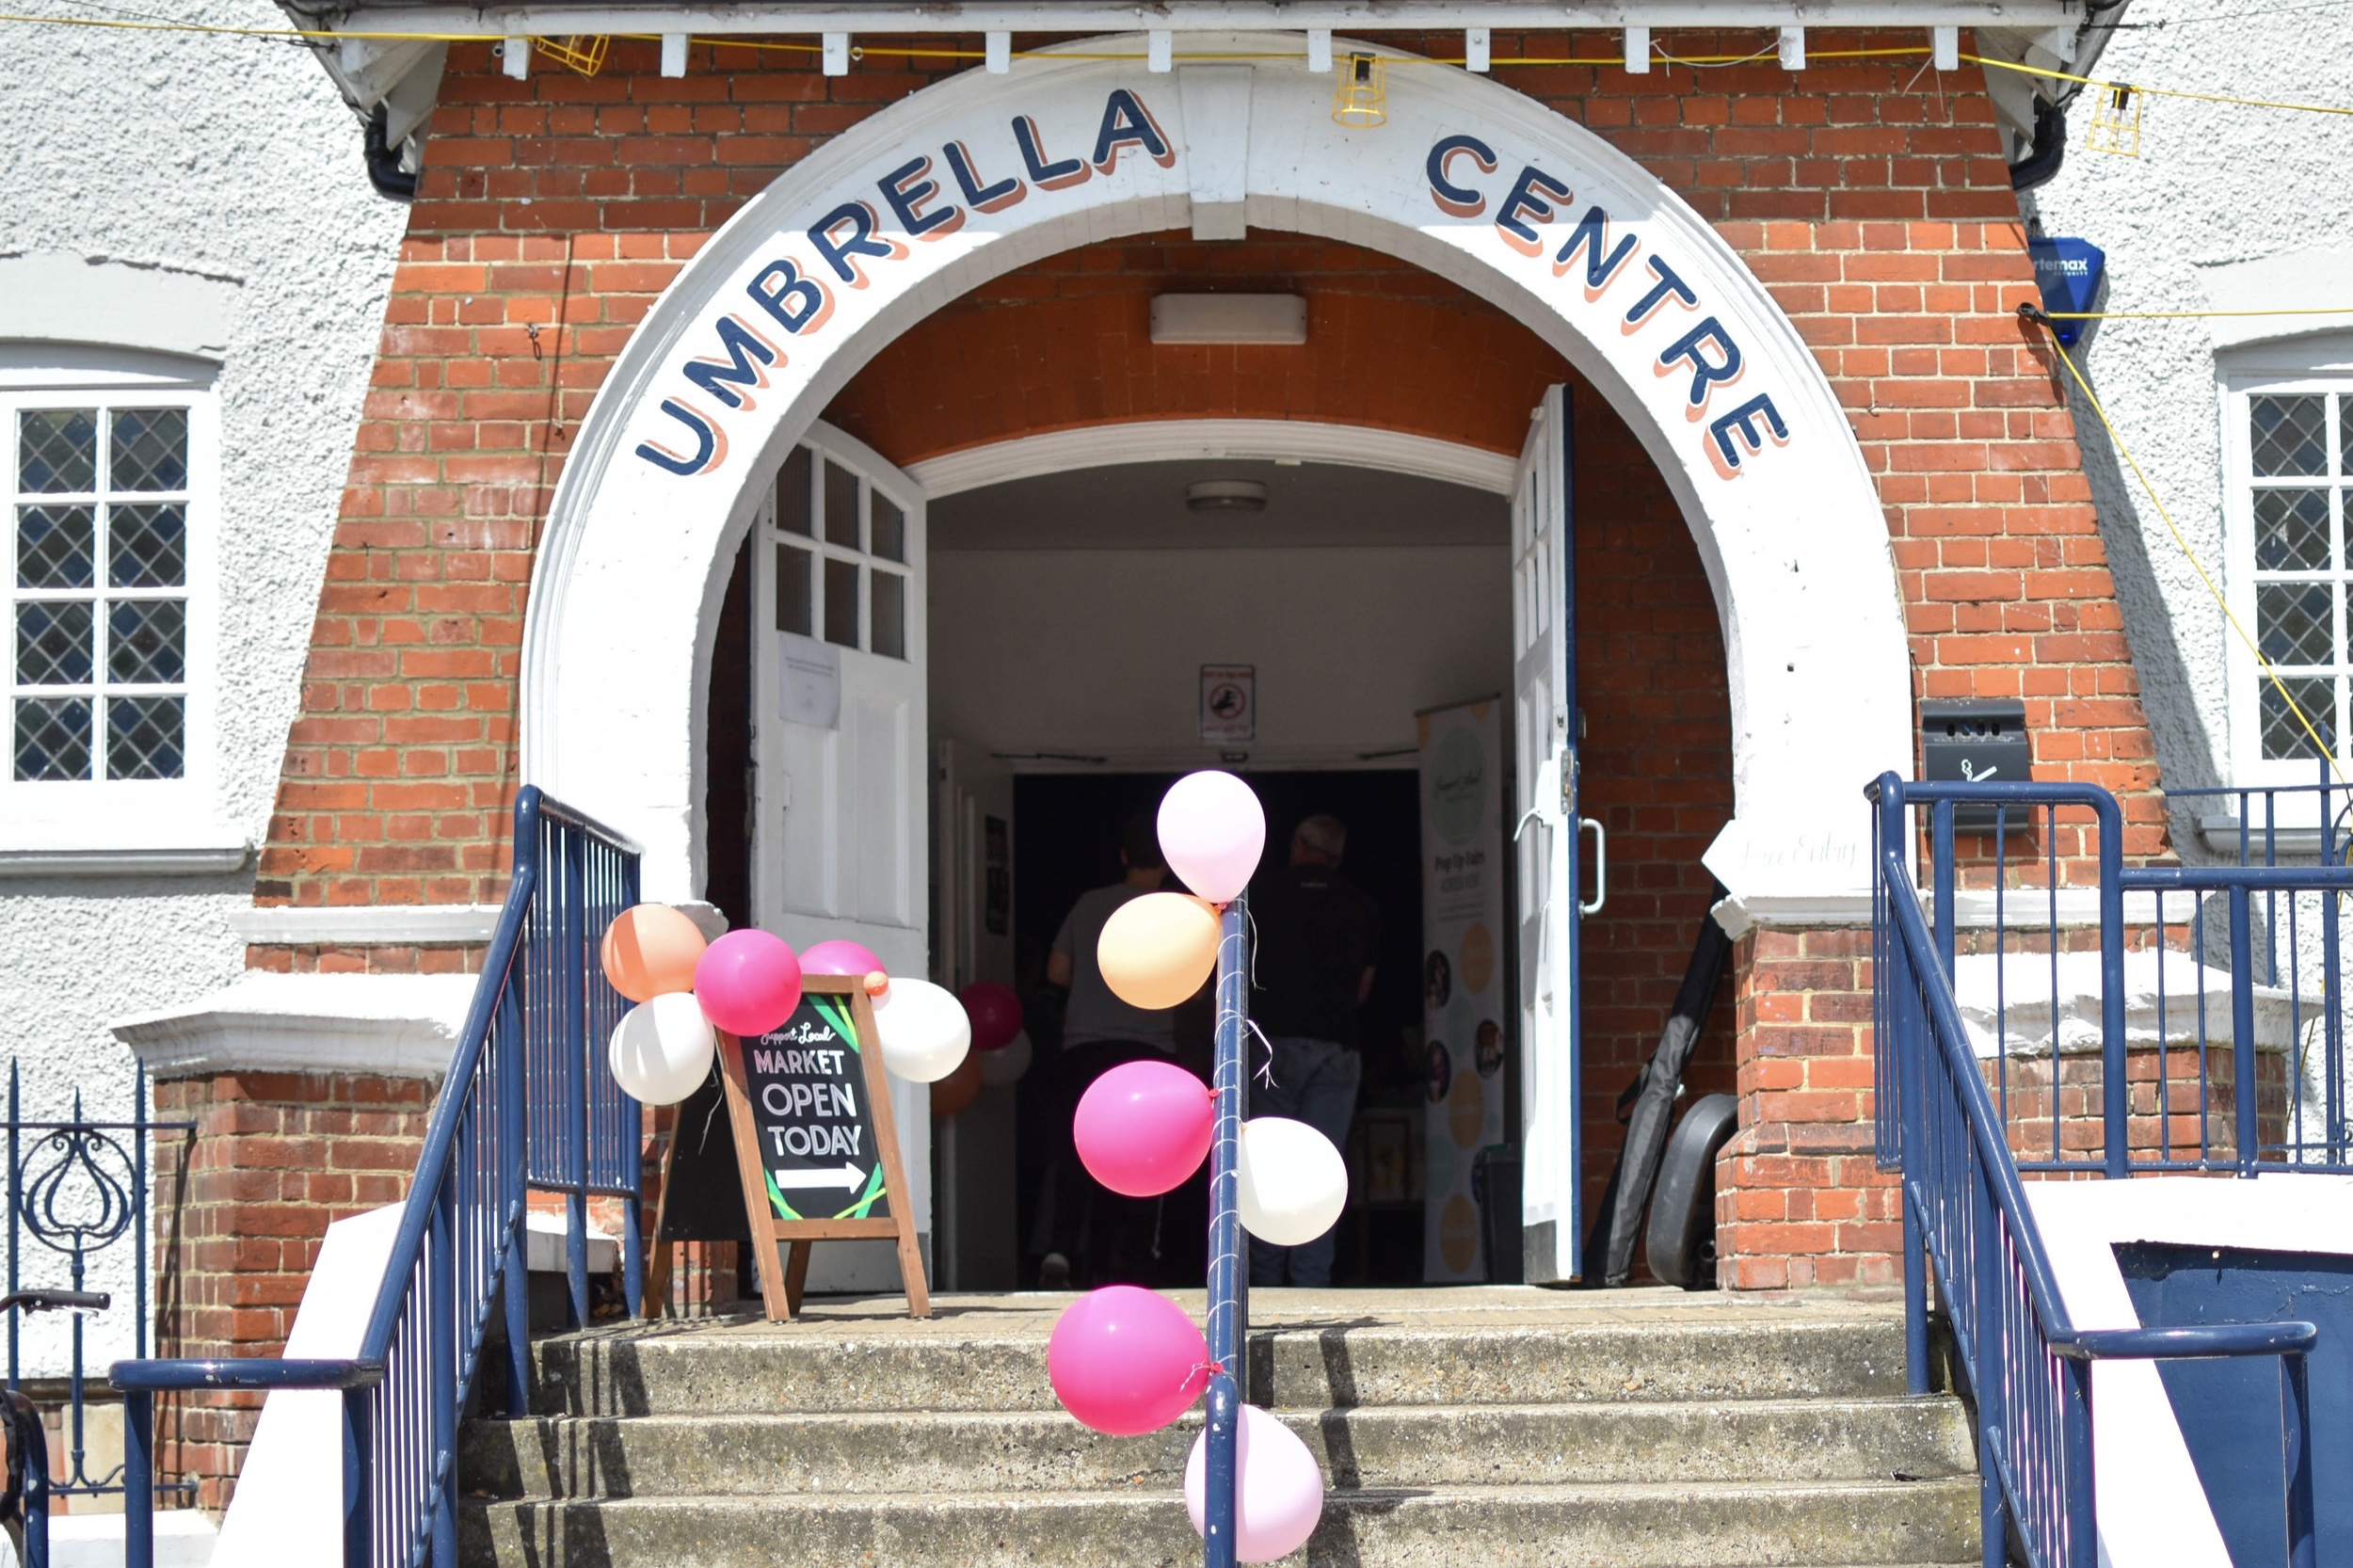 Whitstable - The Umbrella Centre, 10 Oxford St, Whitstable CT5 1DD